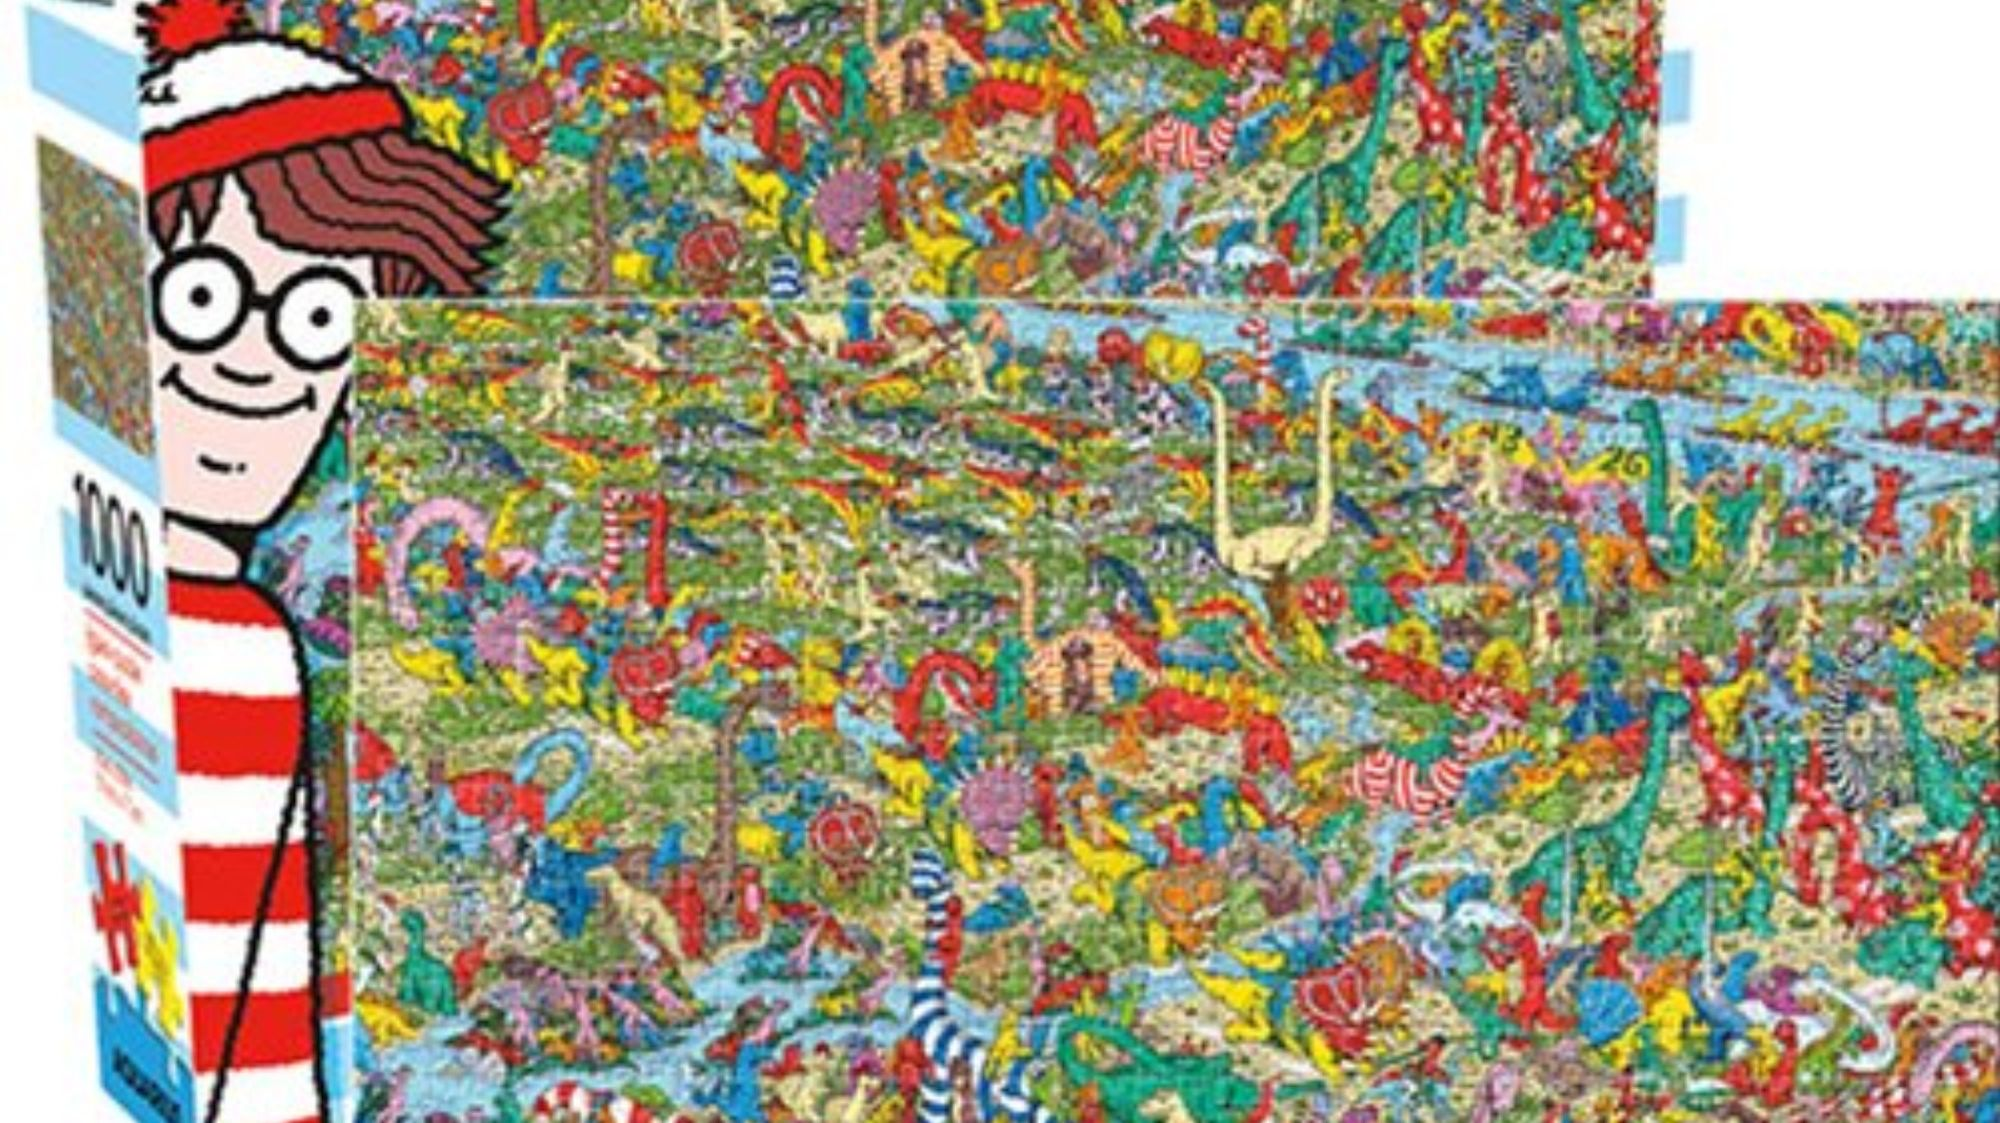 You May Finally Have Enough Time to Find Waldo in This 1000-Piece Puzzle